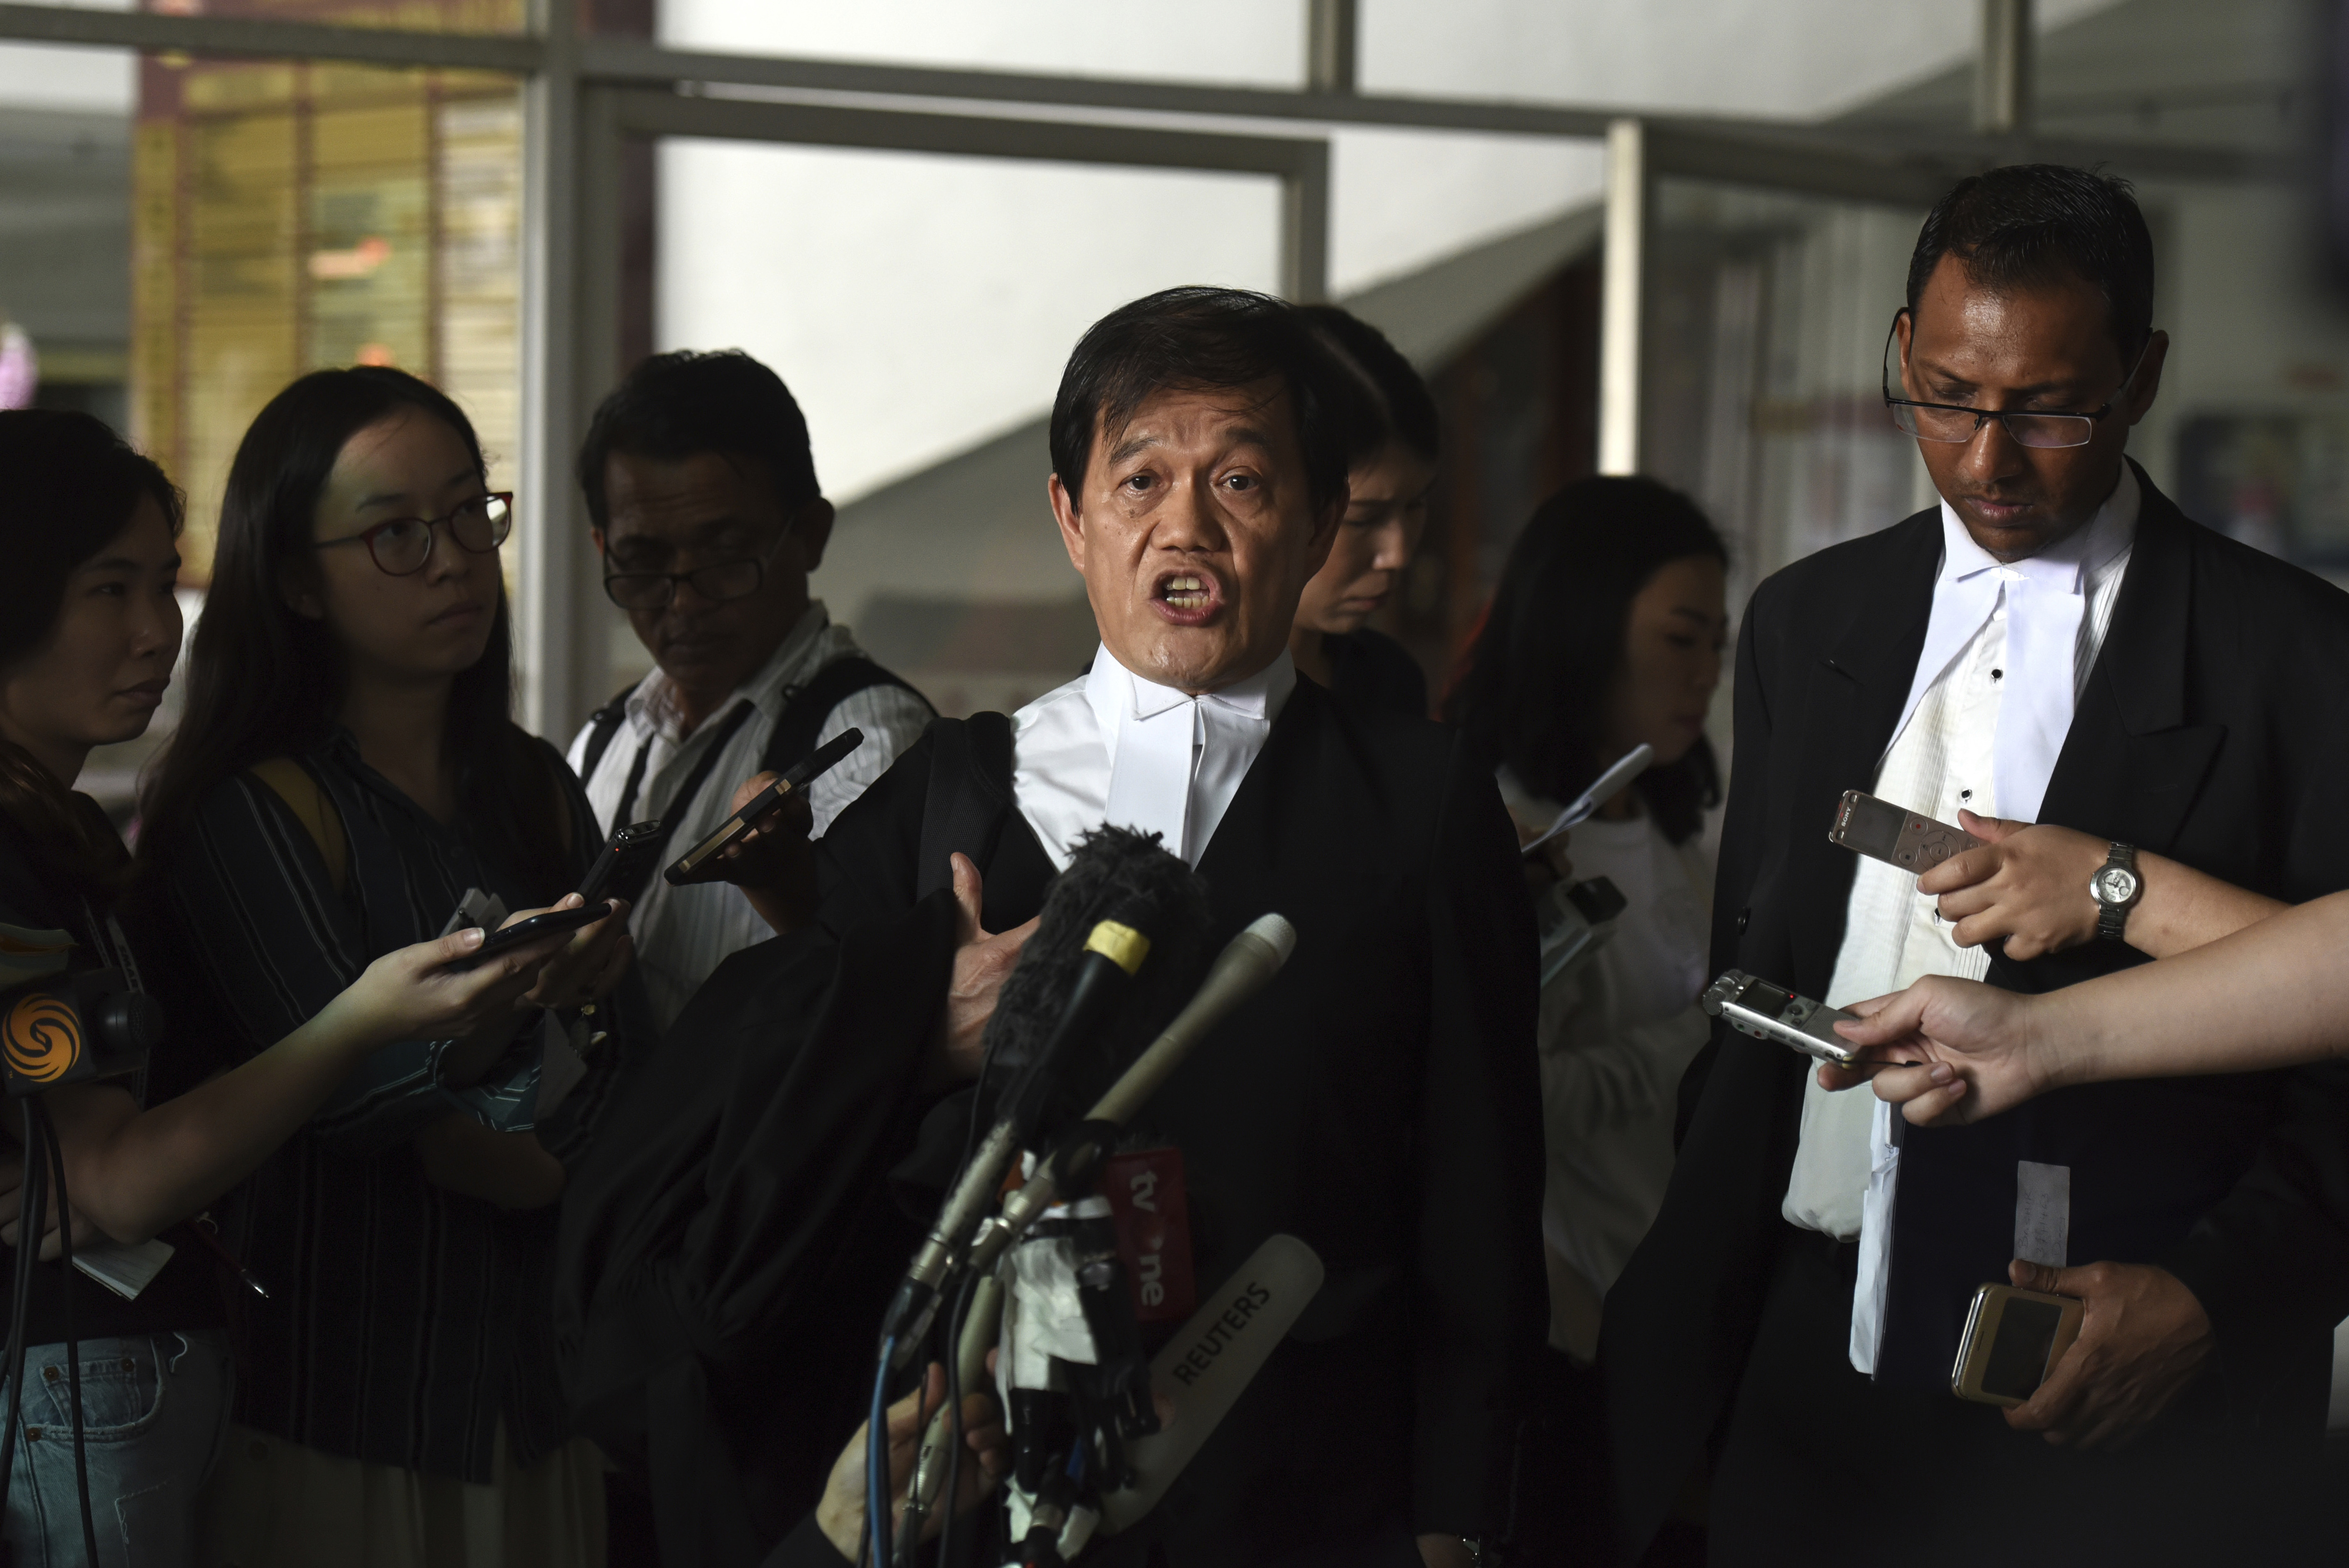 Hisyam Teh Poh Teik, center, the lawyer for Vietnamese Doan Thi Huong, speaks to the media after a court hearing at the Shah Alam High Court after a hearing in Shah Alam, Malaysia, Wednesday, Nov. 7, 2018. A Malaysian court on Wednesday set Jan 7 for two Southeast Asian women charged with murdering the North Korean leader's half-brother to begin their defense, as their lawyers complained that some witnesses were unreachable. (AP Photo/Yam G-Jun)